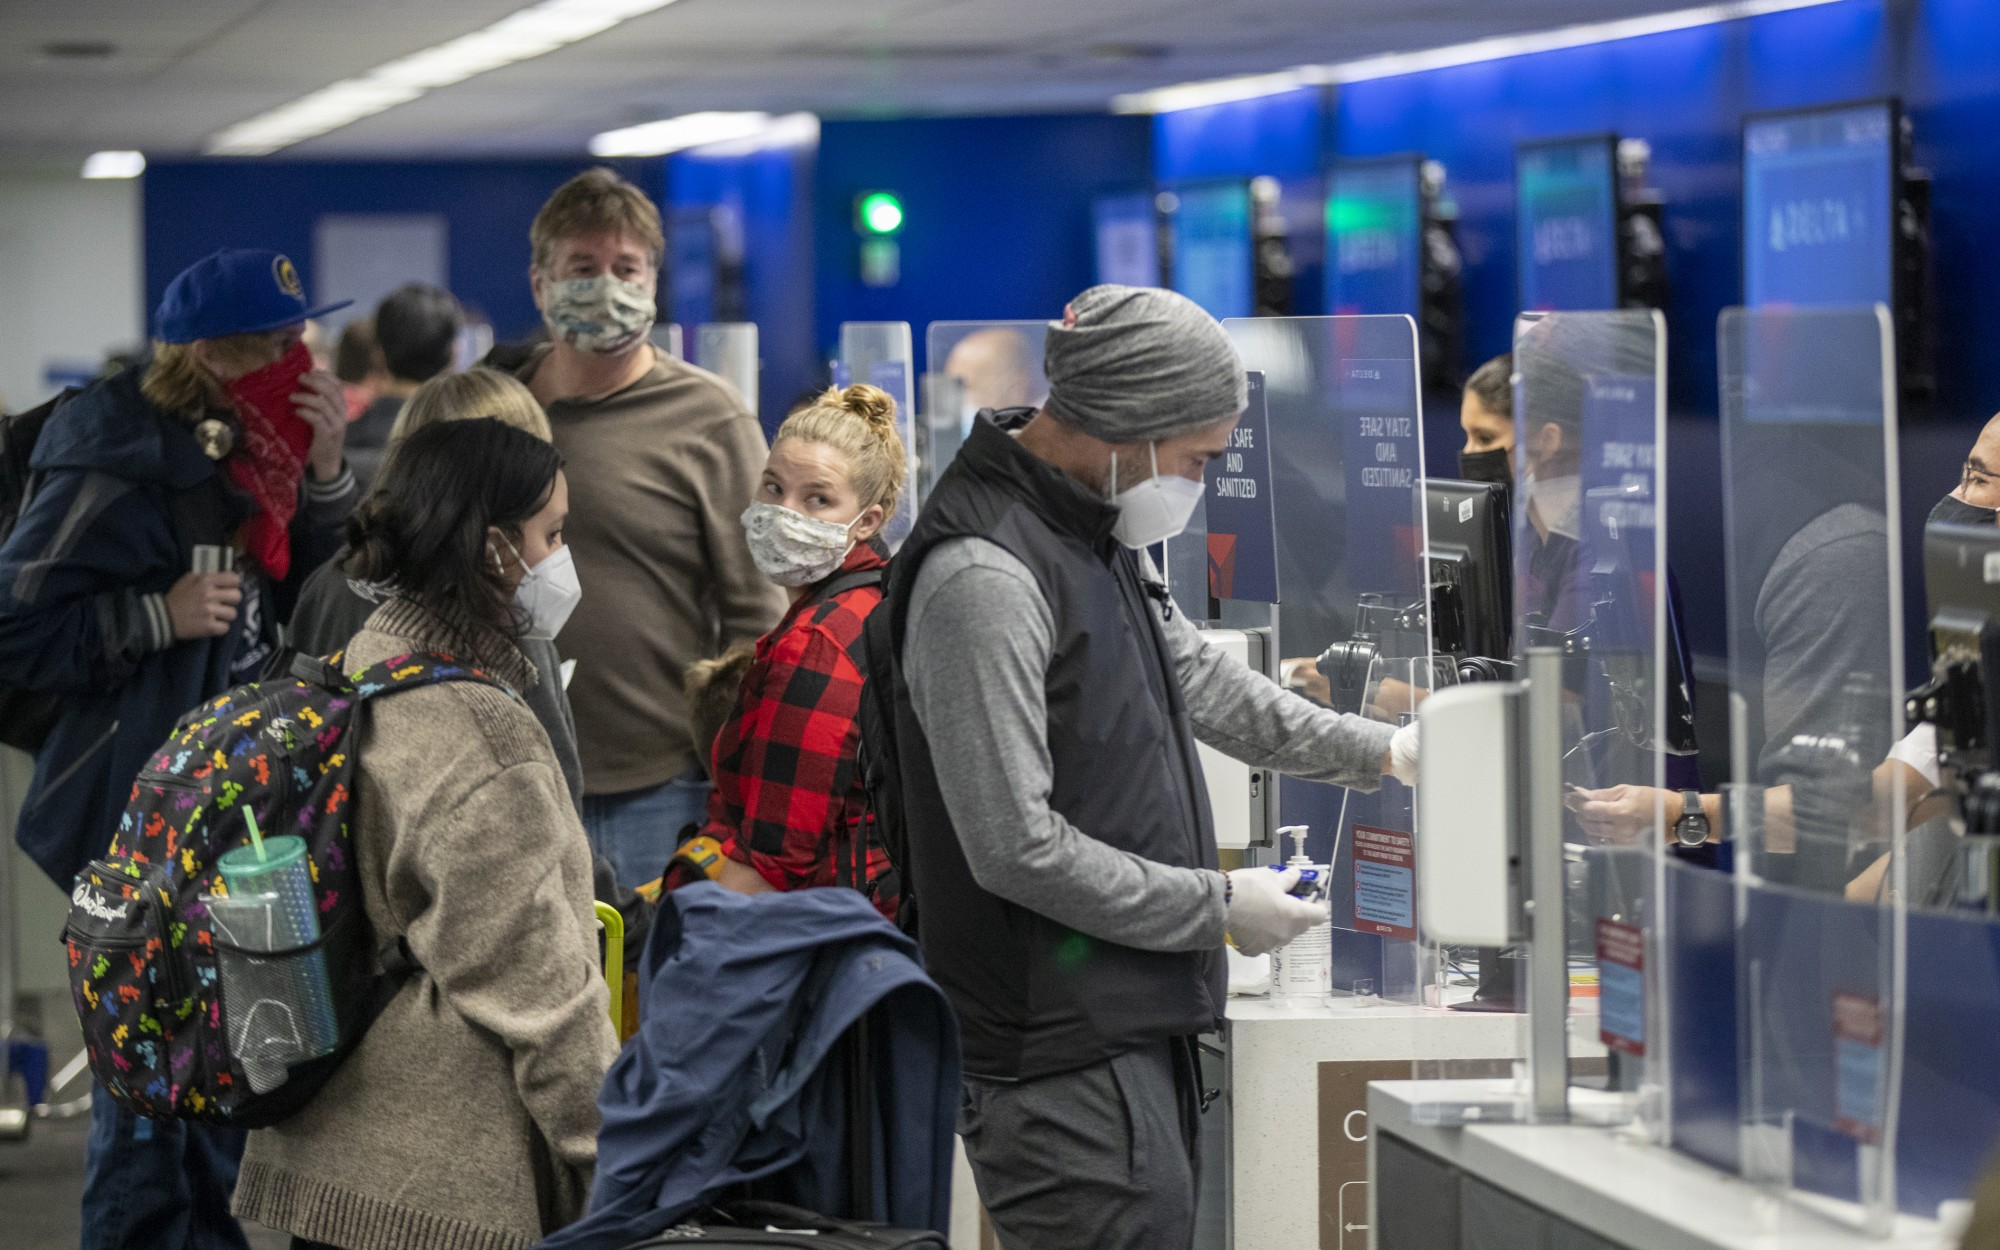 People wearing masks check in at Los Angeles International Airport as Thanksgiving holiday travel gets underway. Despite the public health warnings to avoid Thanksgiving plane travel, some people are taking the risk.(Allen J. Schaben / Los Angeles Times)